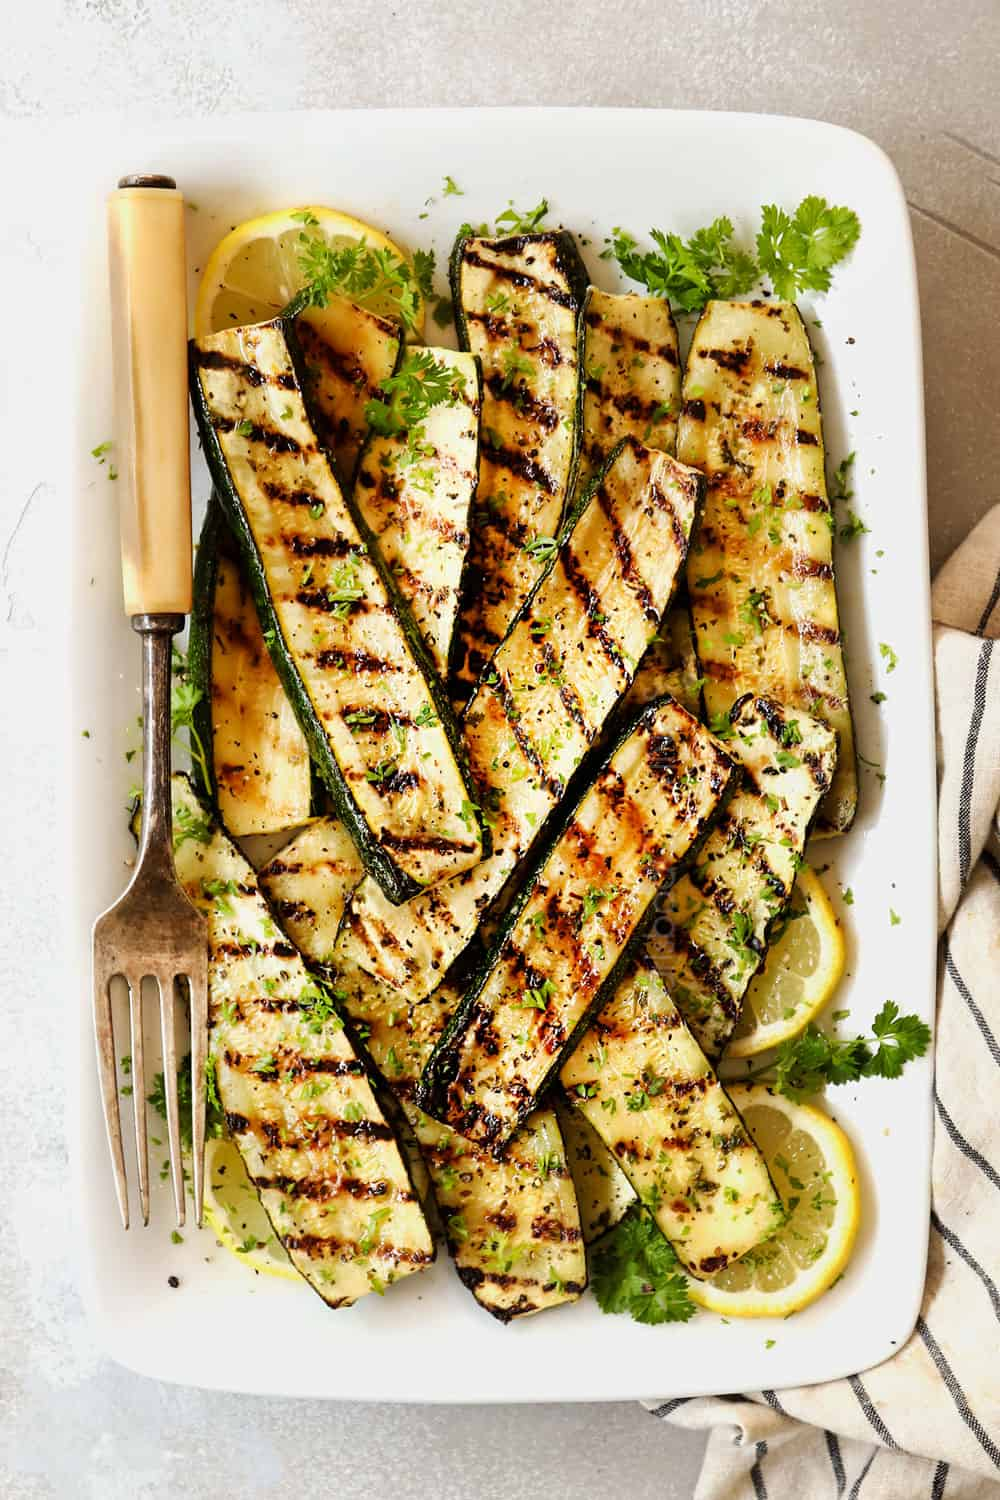 top view of grilled zucchini and squash on a white platter with distinct grill marks